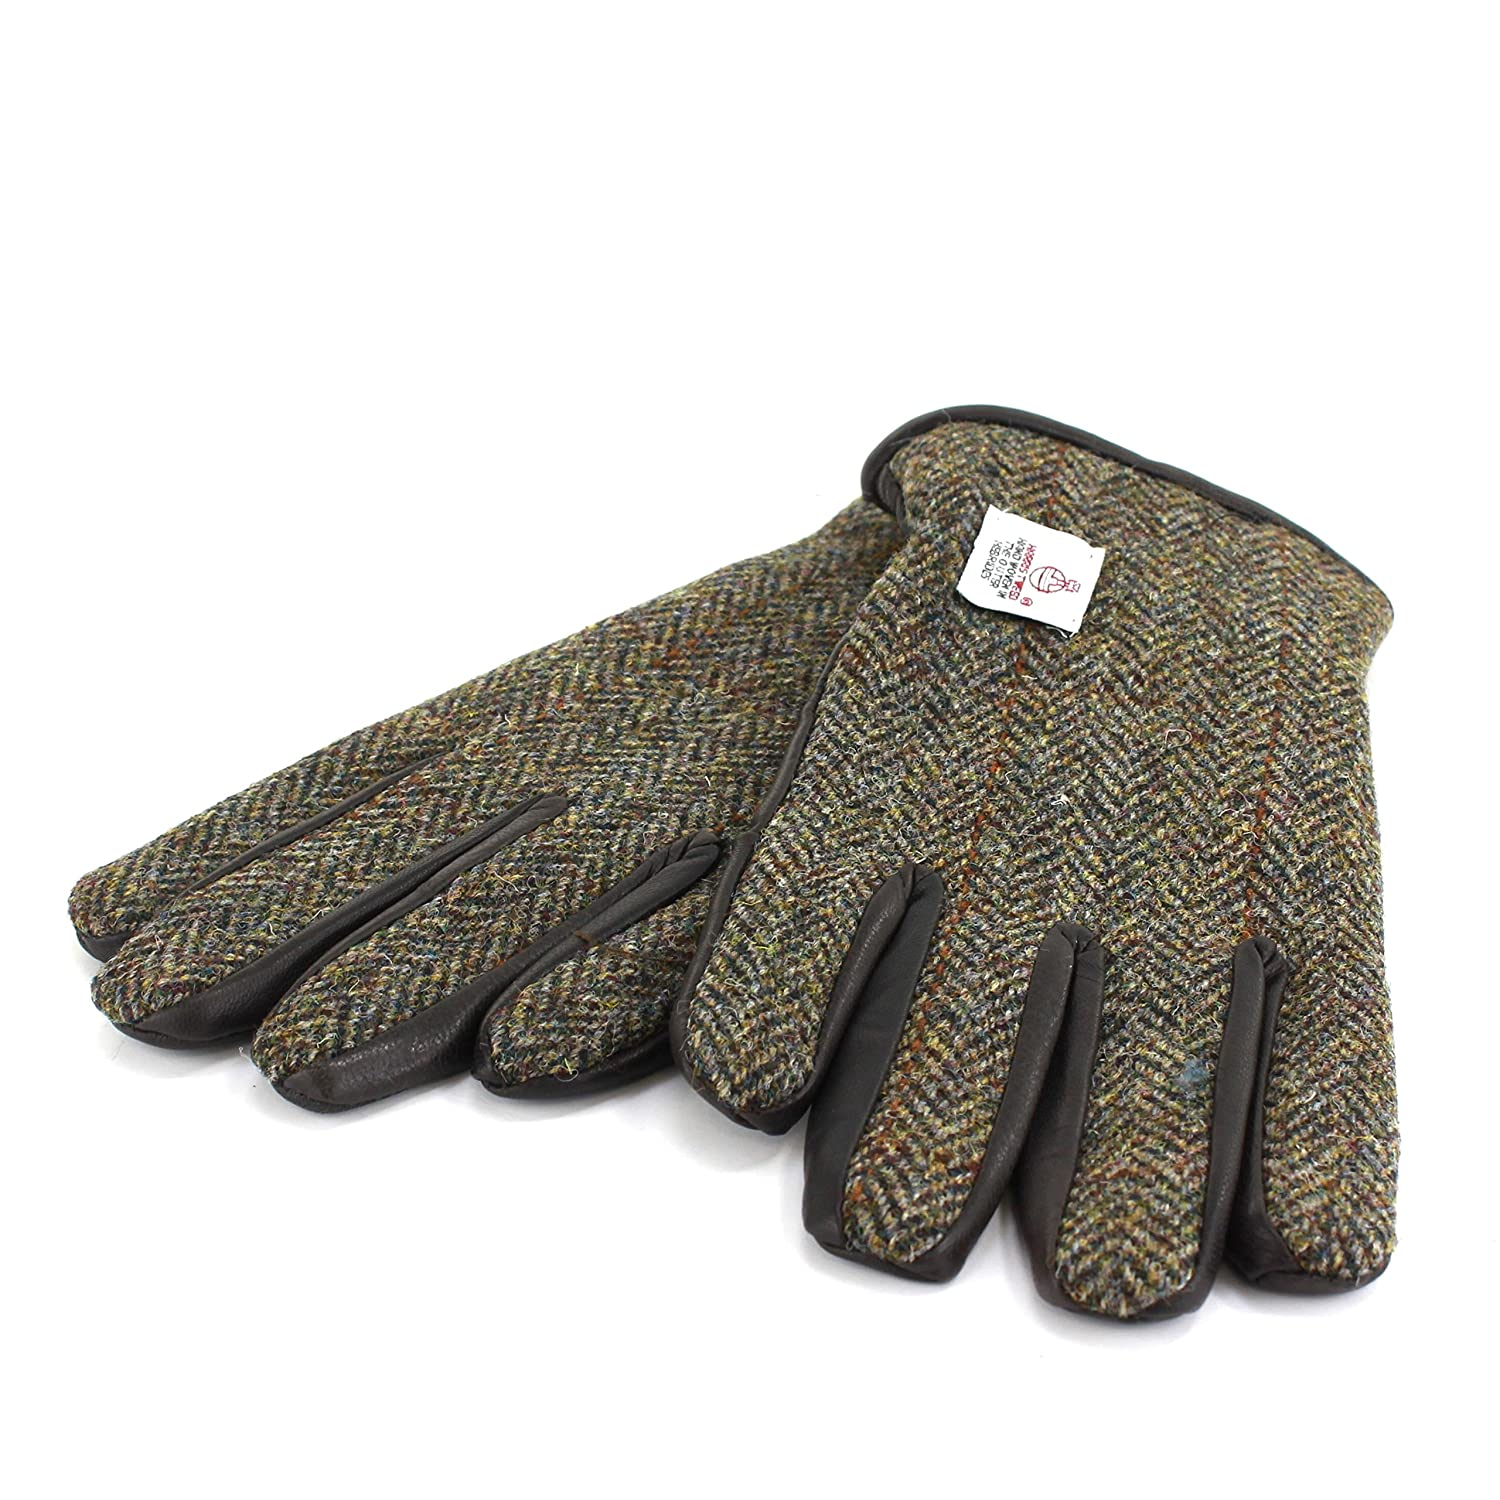 Harris Tweed glove with Genuine Leather Palms